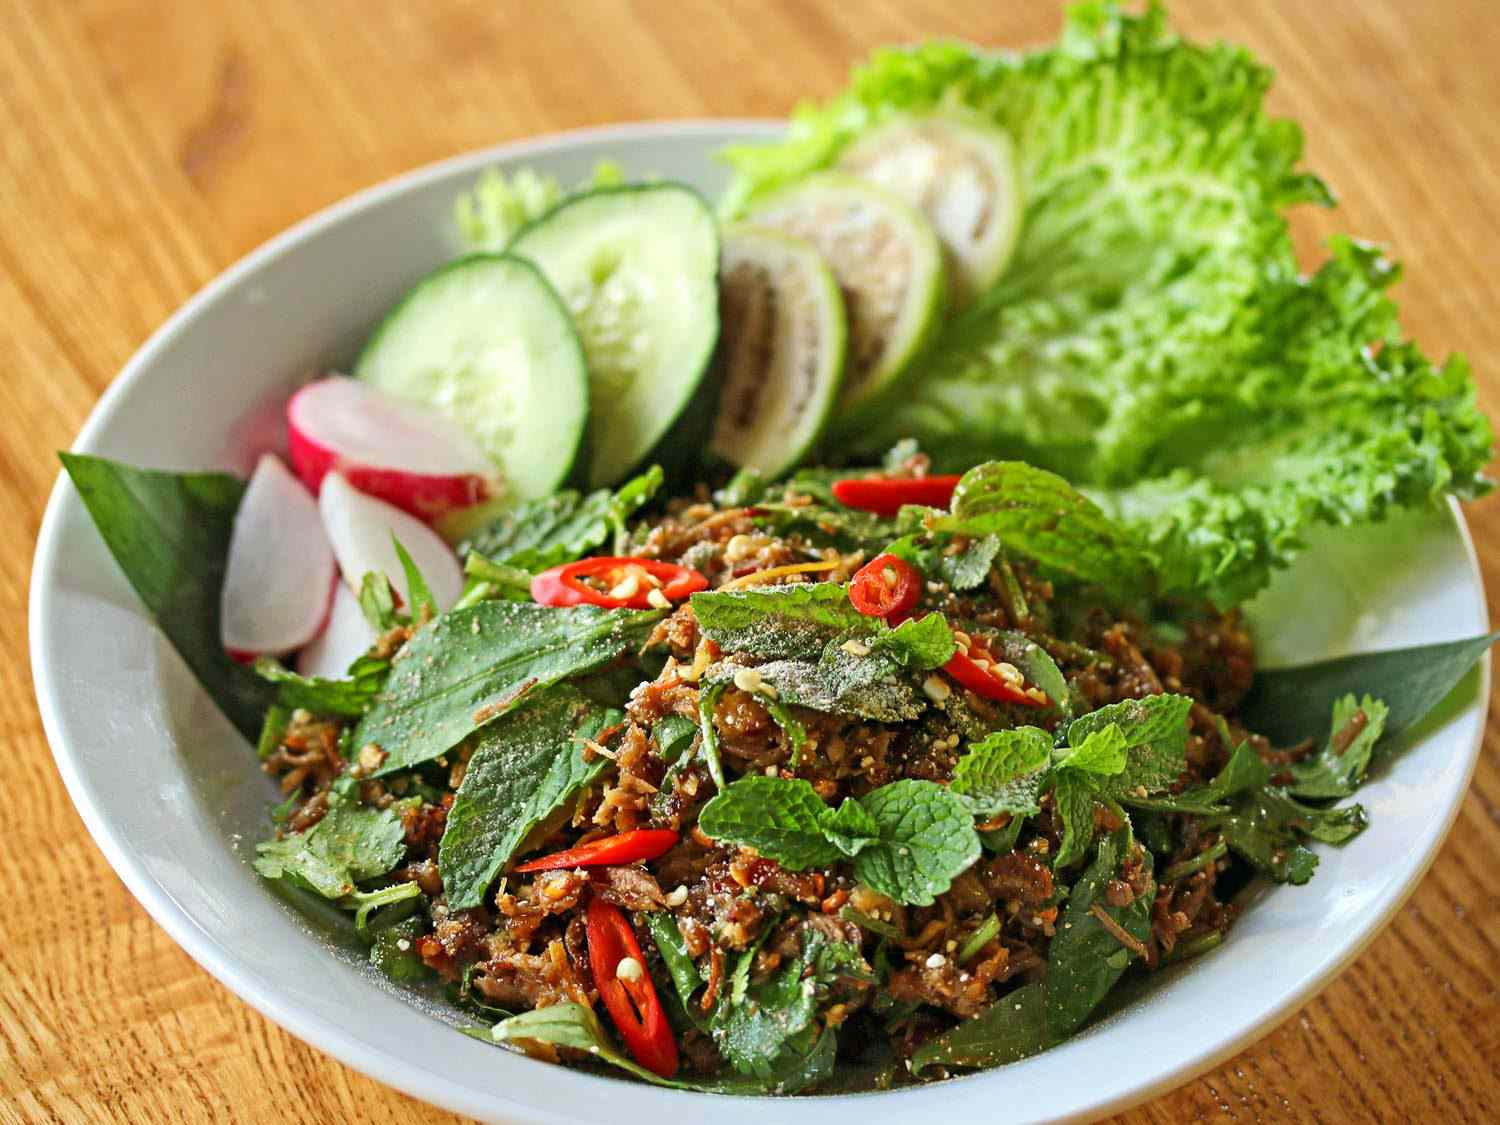 A bowl of laab ped, a salad of ground duck meat, chilies, and herbs, topped with whole mint leaves, with lettuce, cucumber, and radish on the side